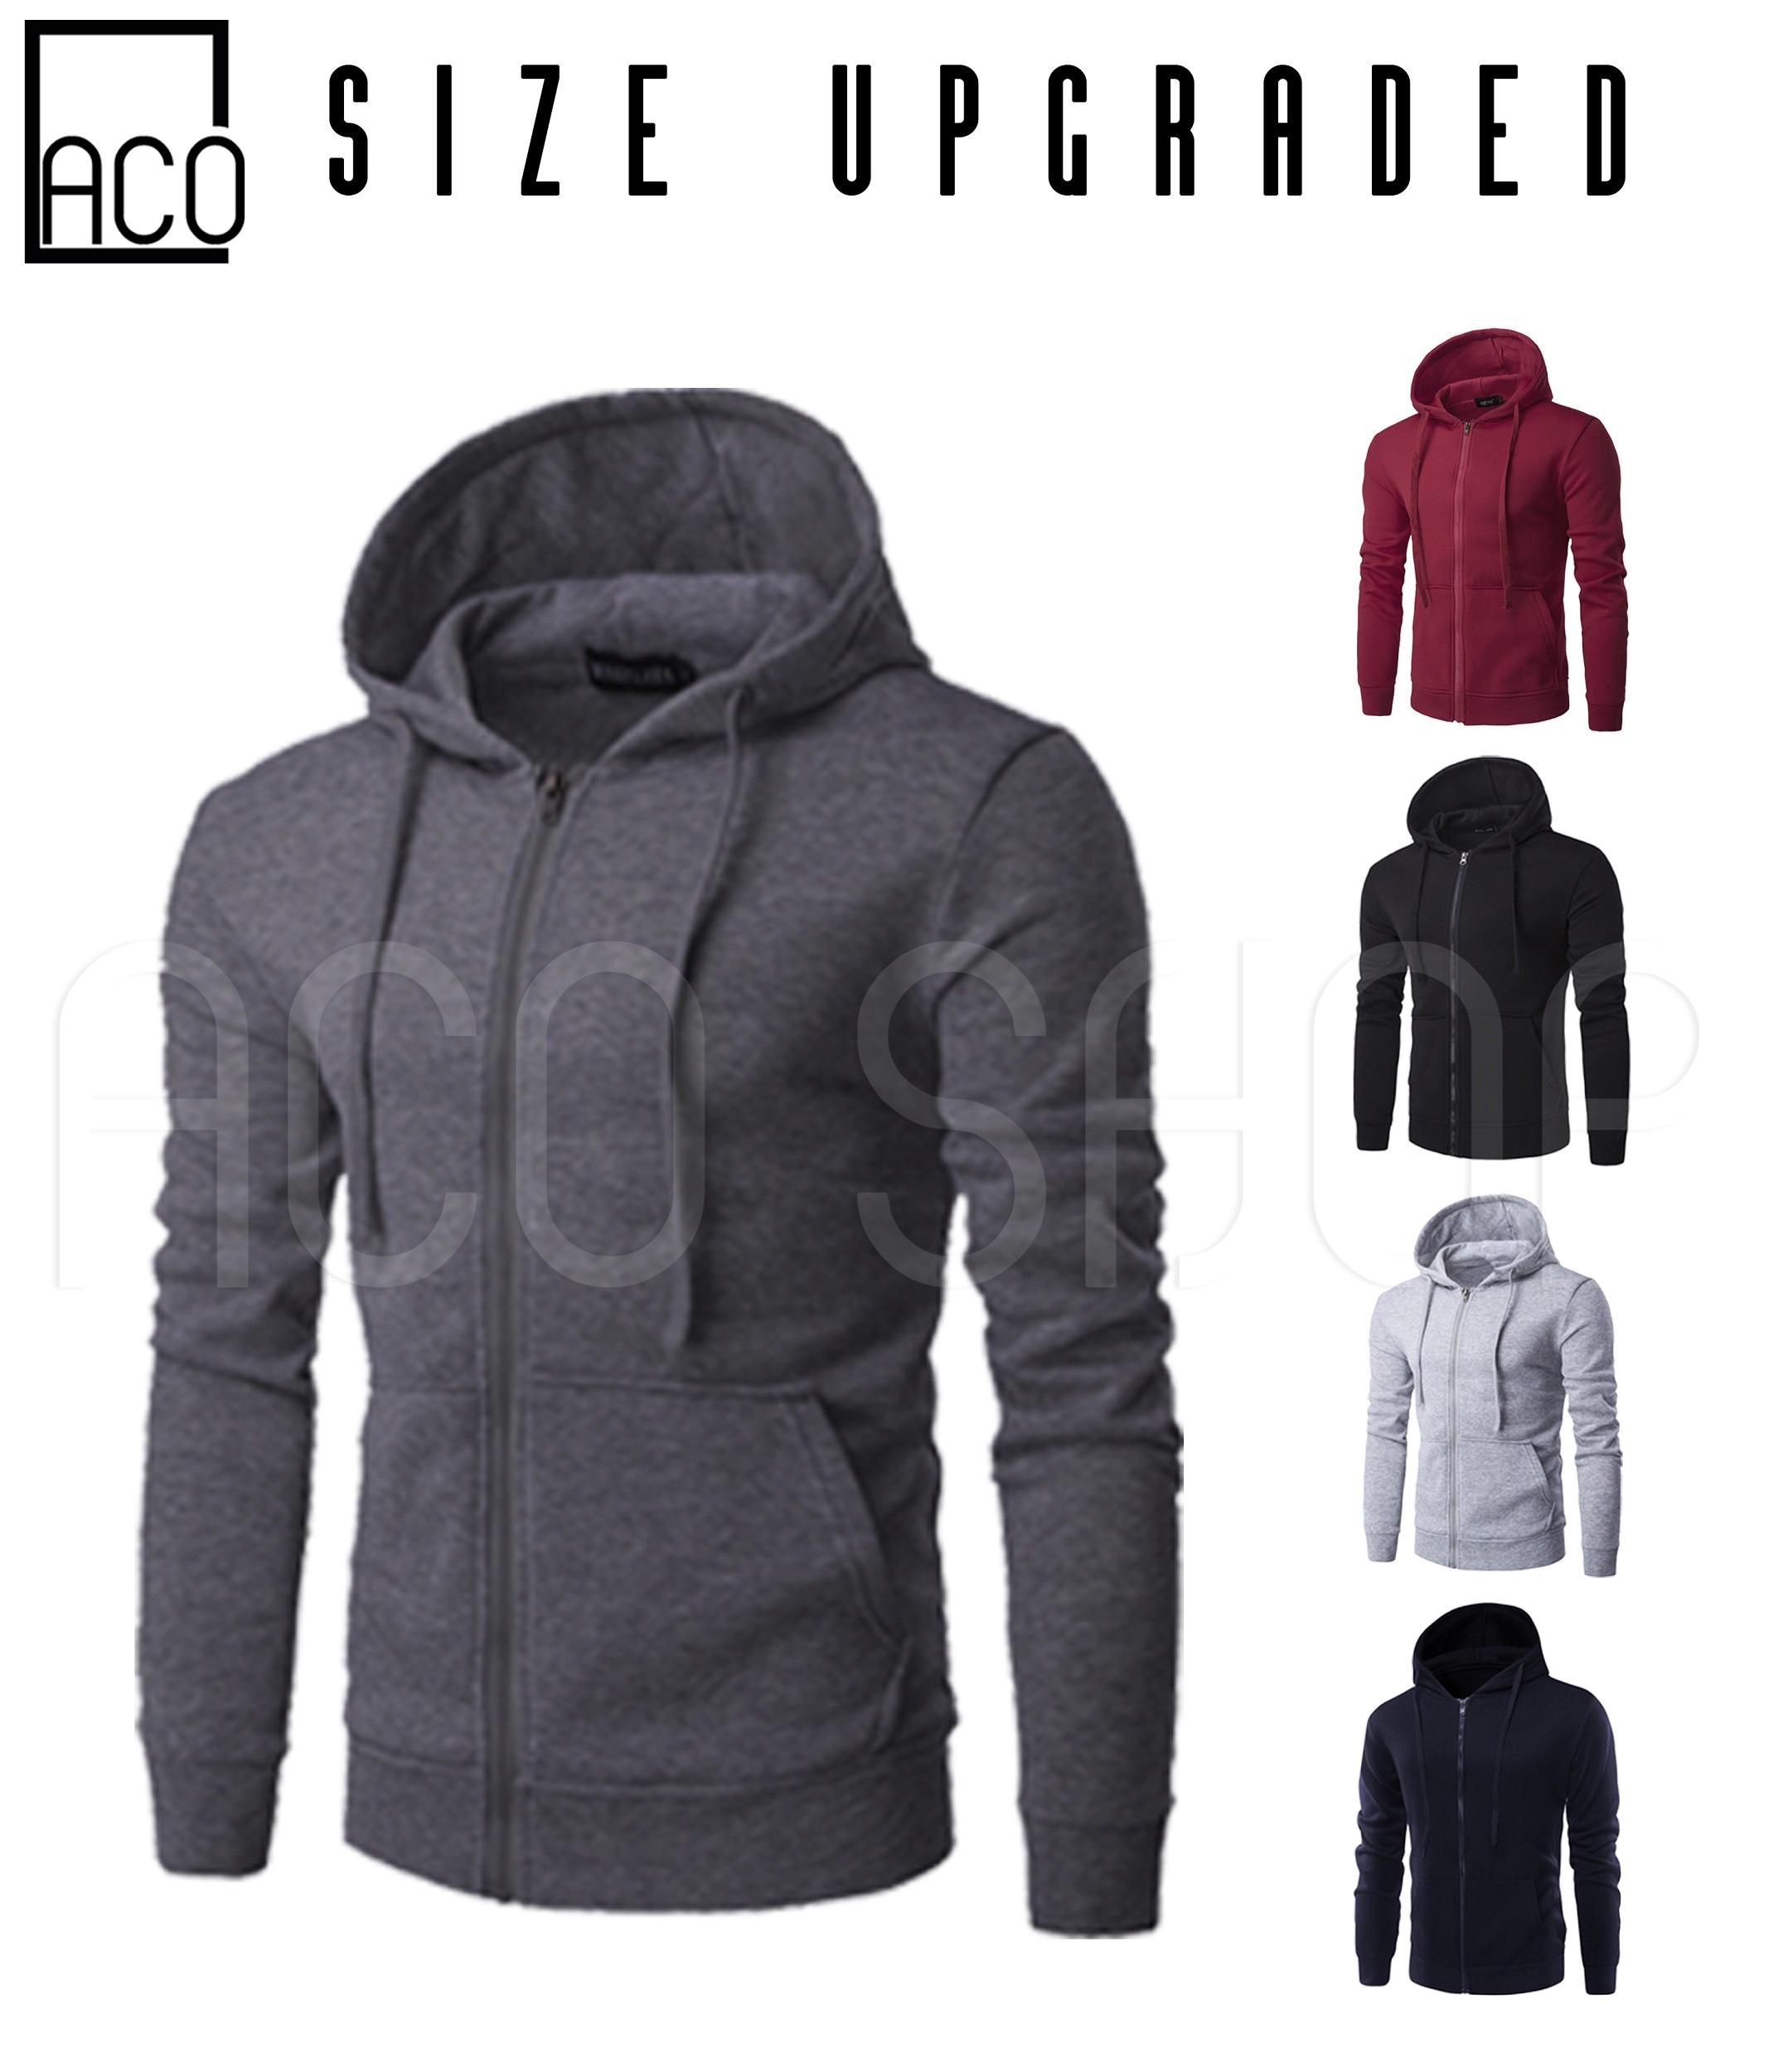 a1e99068d ACO Fashion M991 Mens Jacket with Zipper Hoodie Jacket Plain (Size Upgraded)